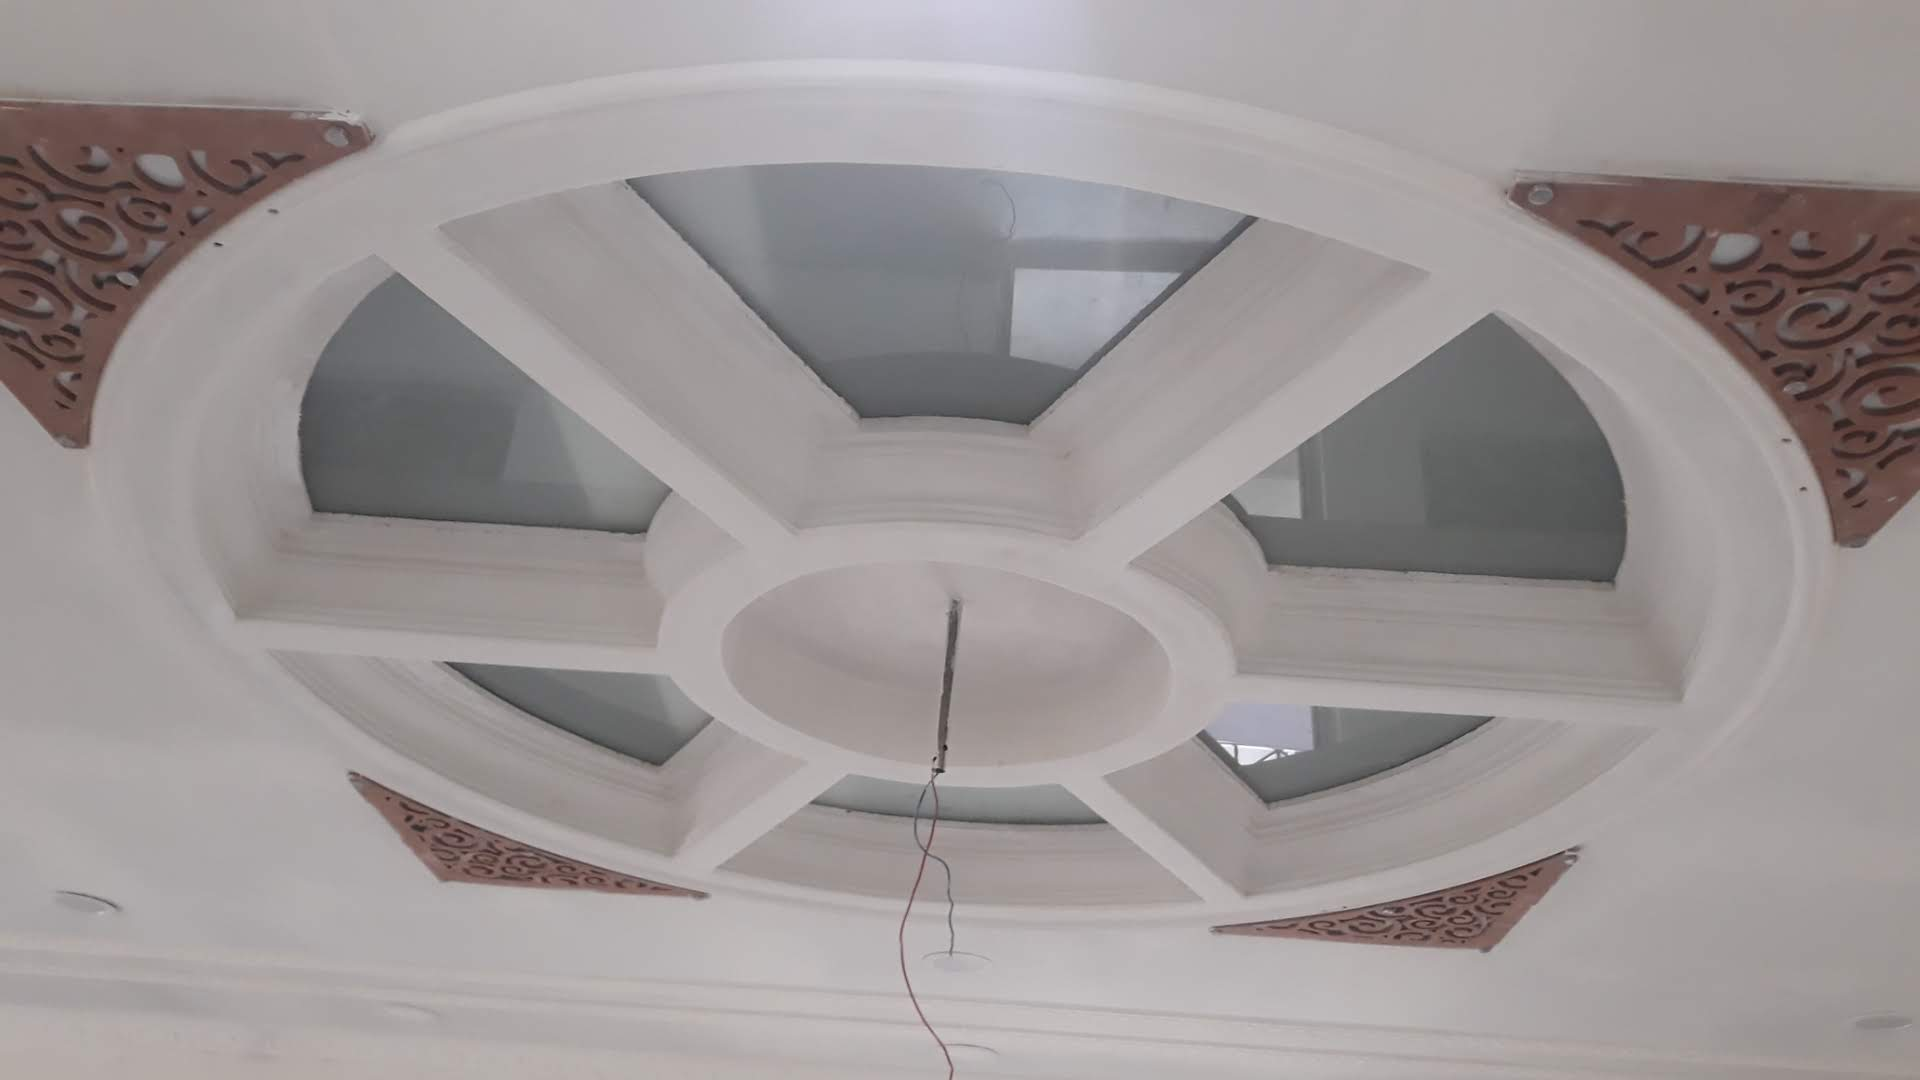 mdf jali ceiling design , drywall gypsum bod false ceiling , false ceiling , roof ceiling design , gypsum bod false ceiling design , heat prove false ceiling design,